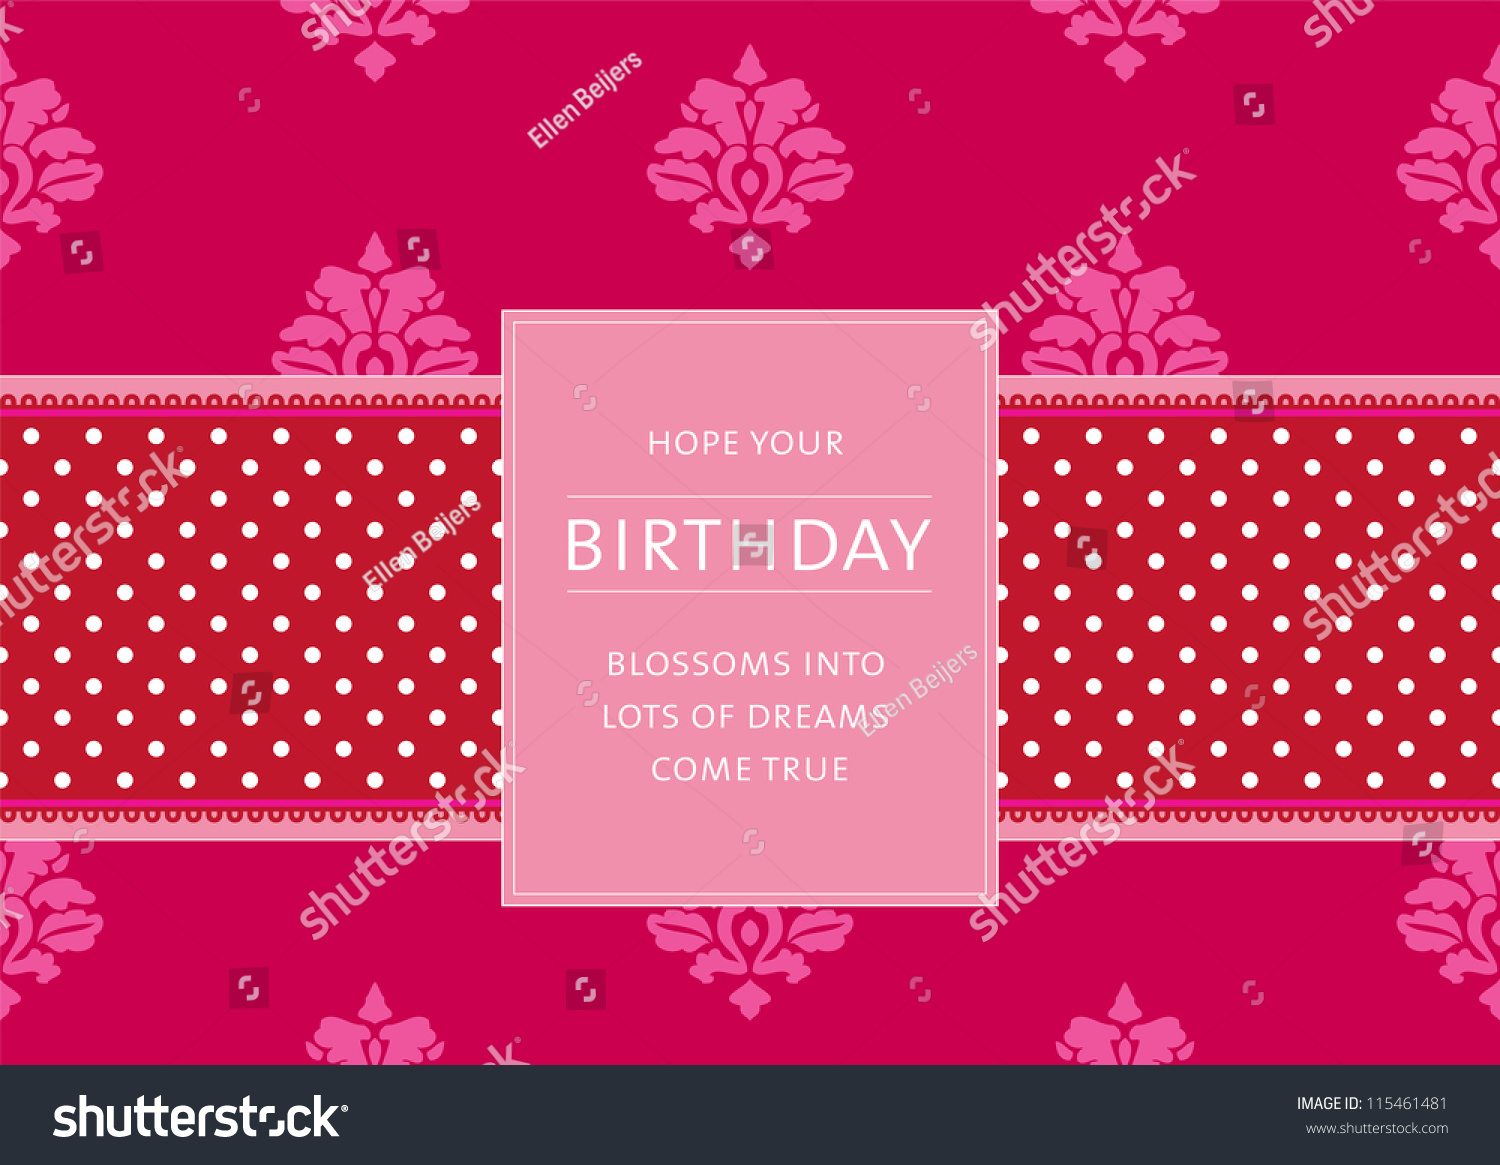 Editable template for a birthday card with floral background a polkadot ribbon and a retro for Editable birthday cards